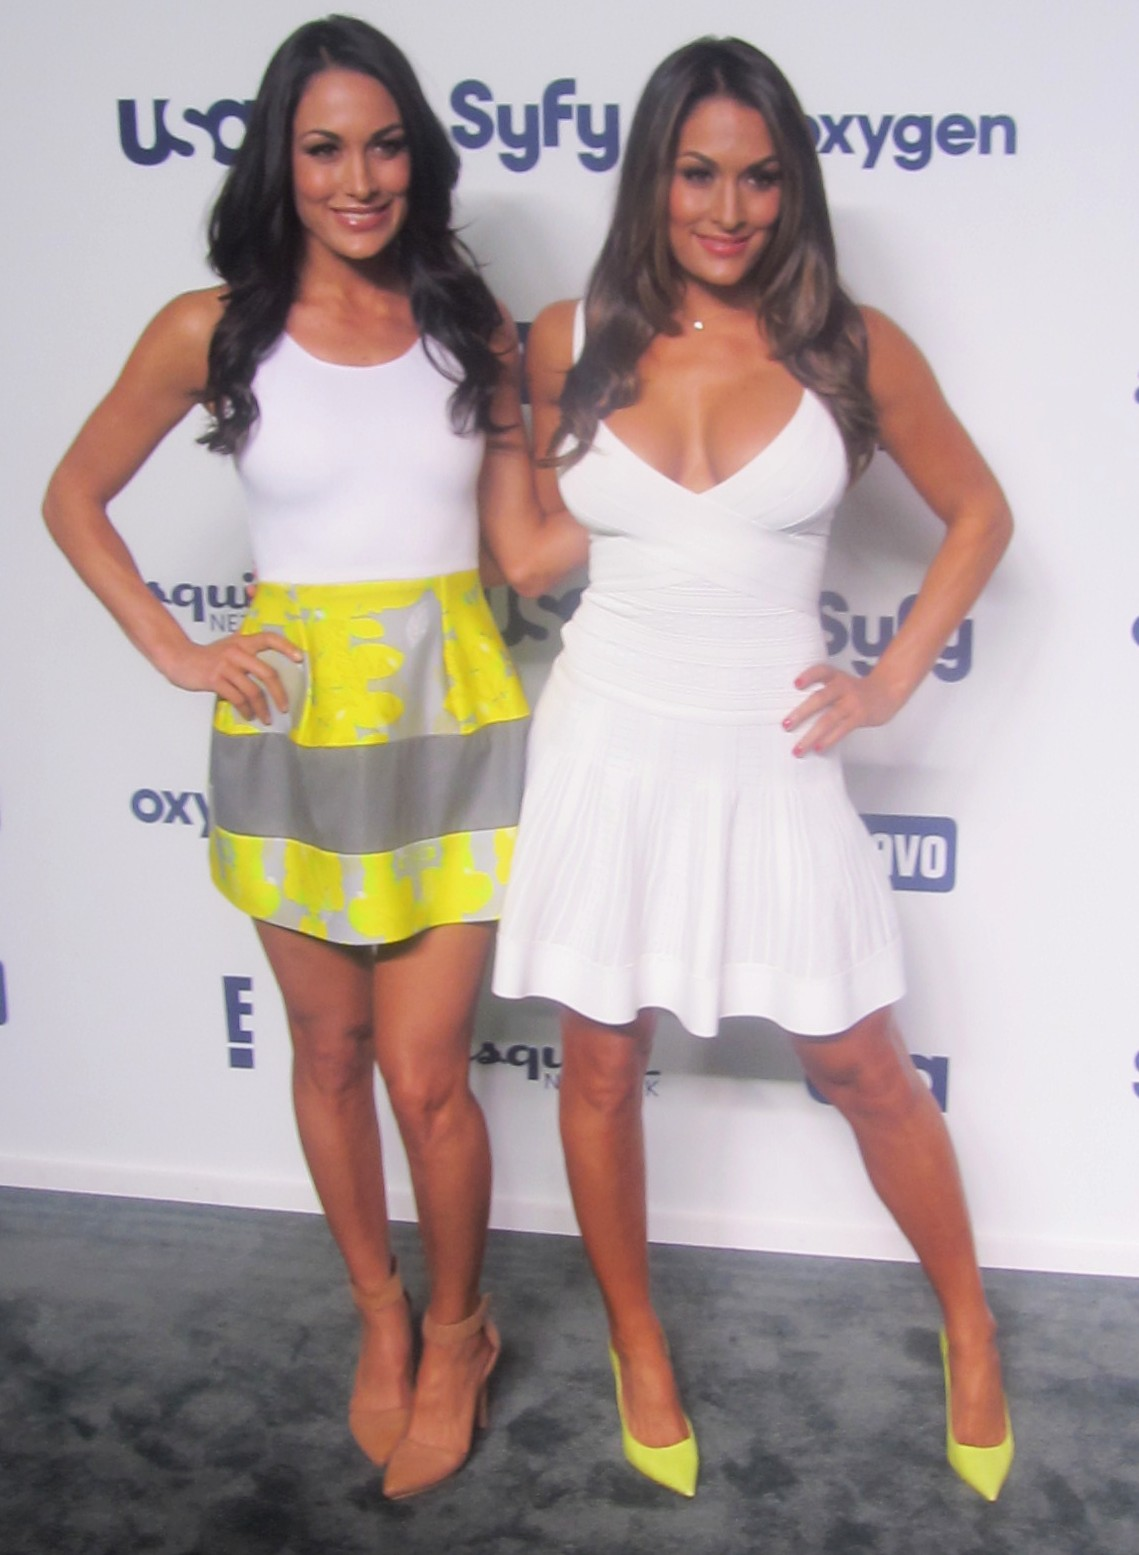 Nikki and Brie Bella Total Divas Returns for fifth season on E! in New York